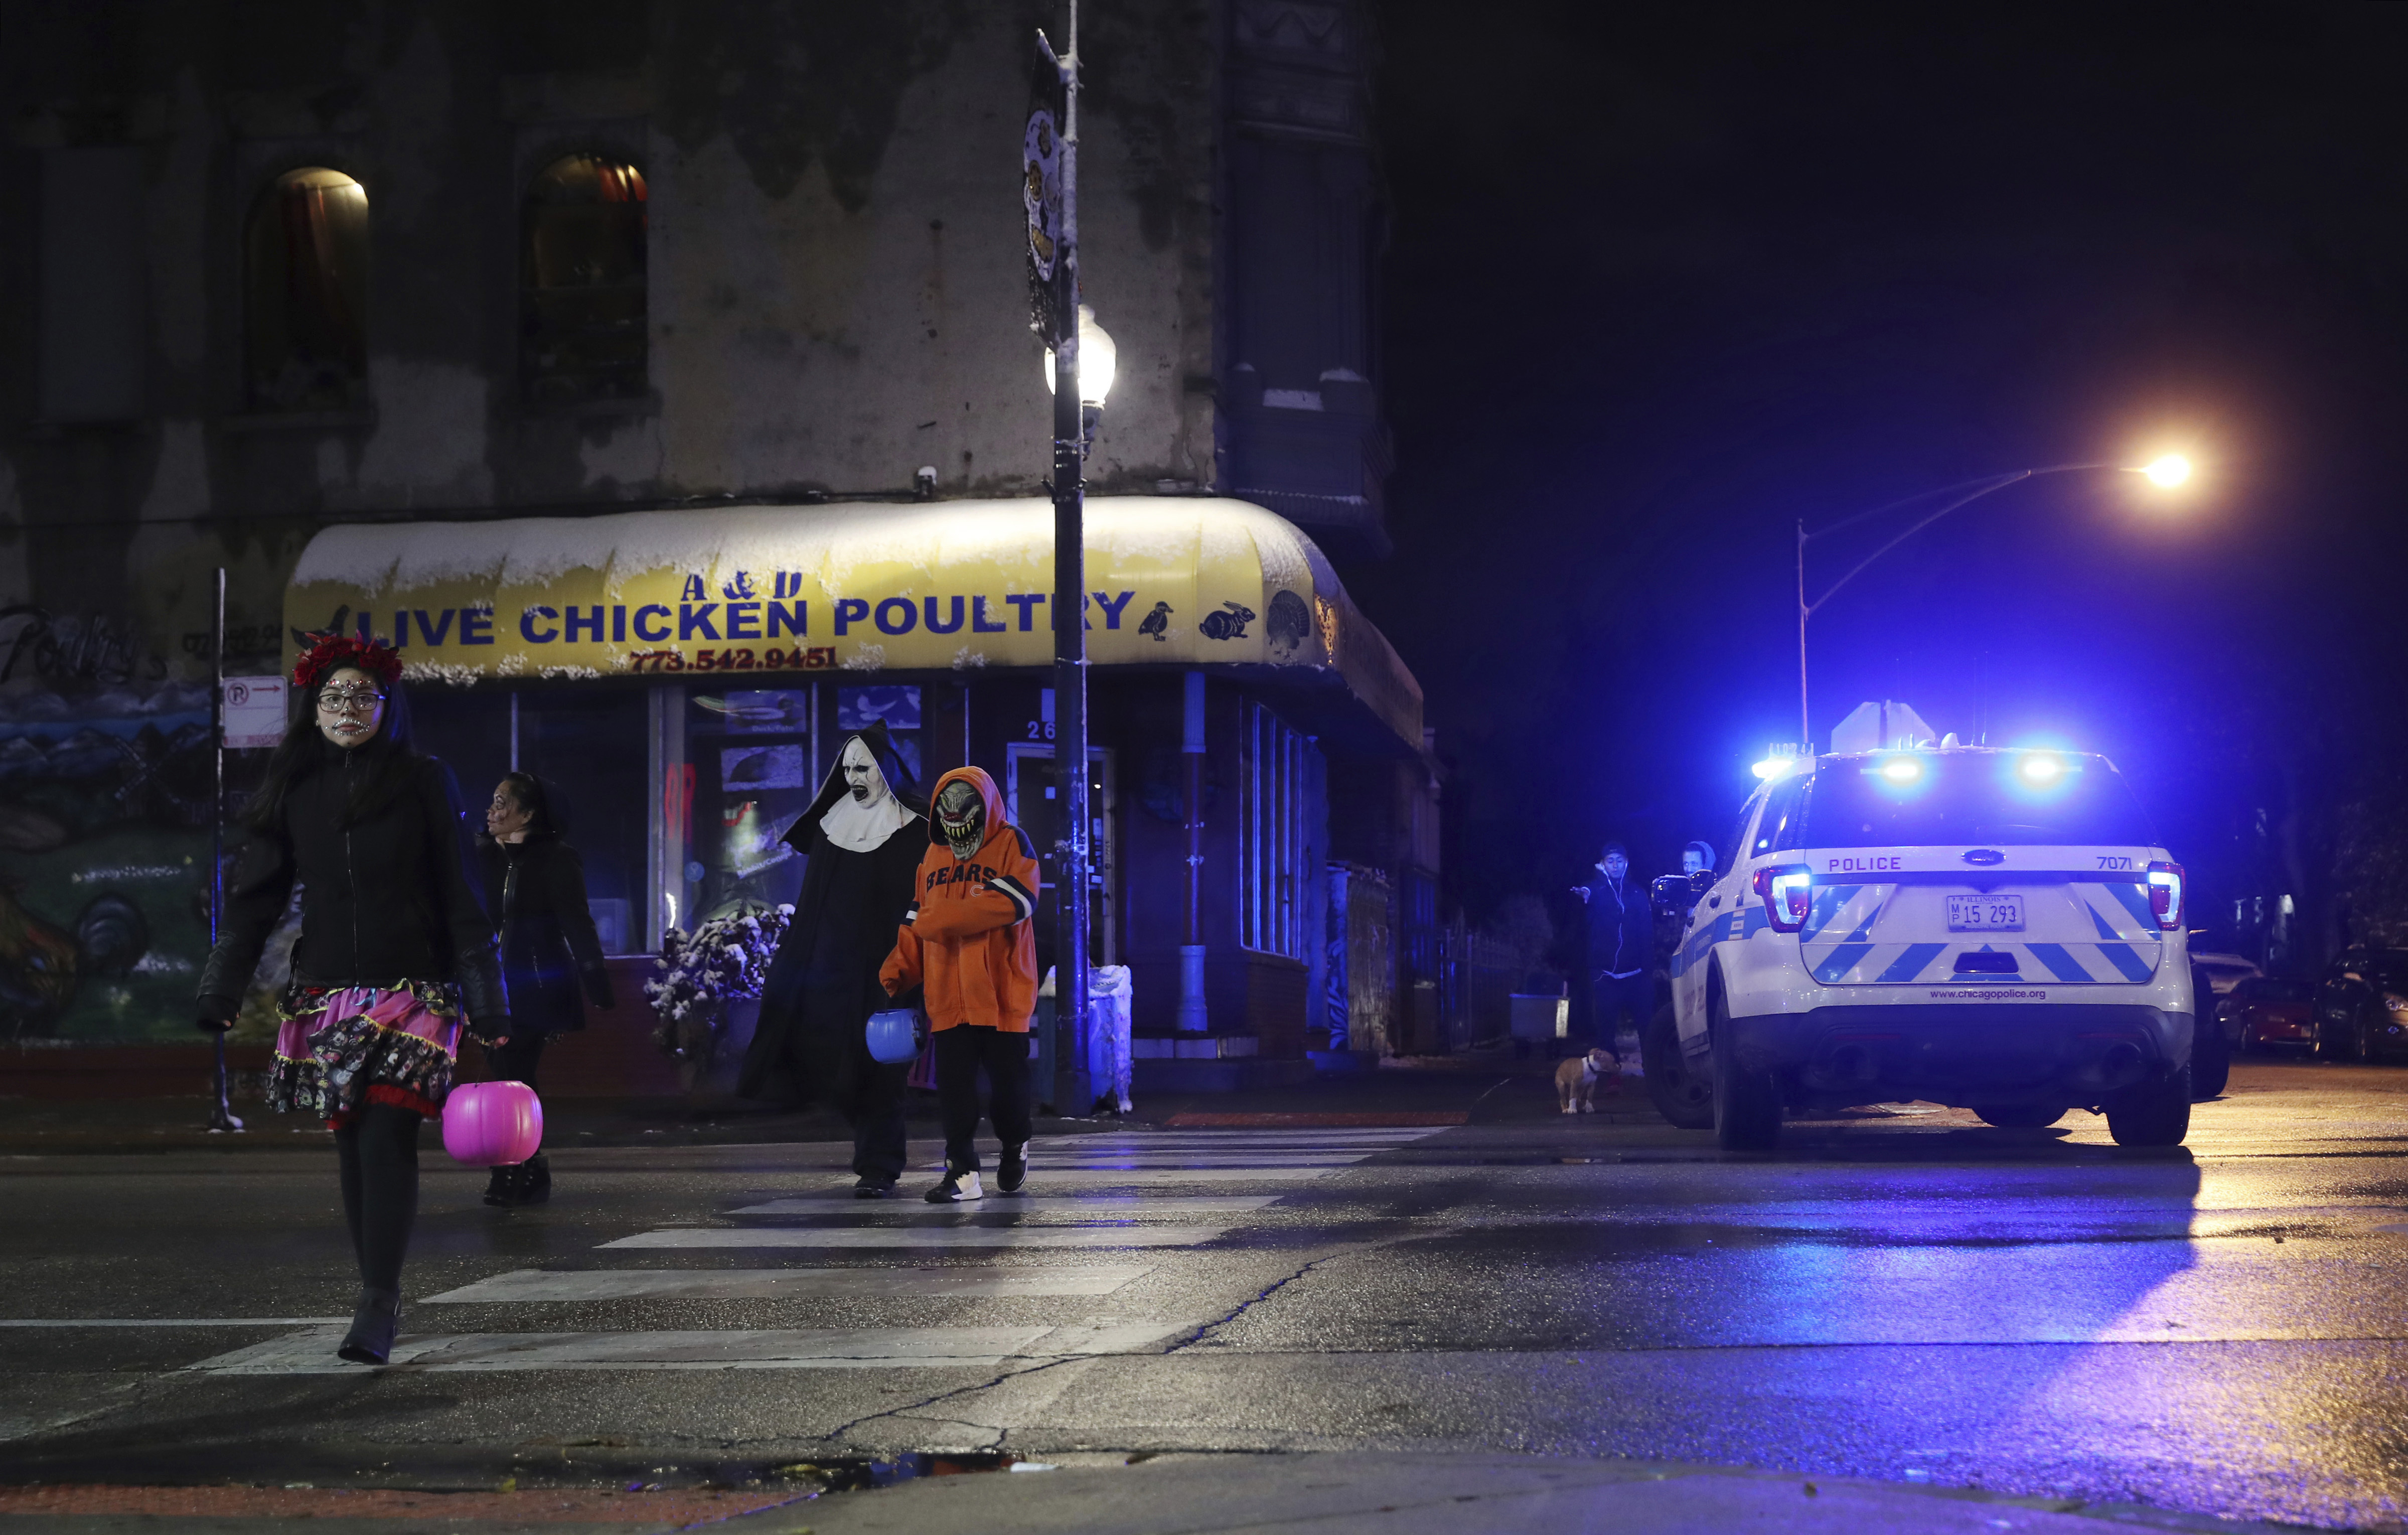 Trick-or-treaters walk past a crime scene in the 3700 block of West 26th Street, where a 7-year-old girl was shot while trick-or-treating Thursday, Oct. 31, 2019, in Chicago. A 7-year-old girl out trick-or-treating in a bumblebee outfit was critically injured Thursday night during a shooting on Chicago's West Side.